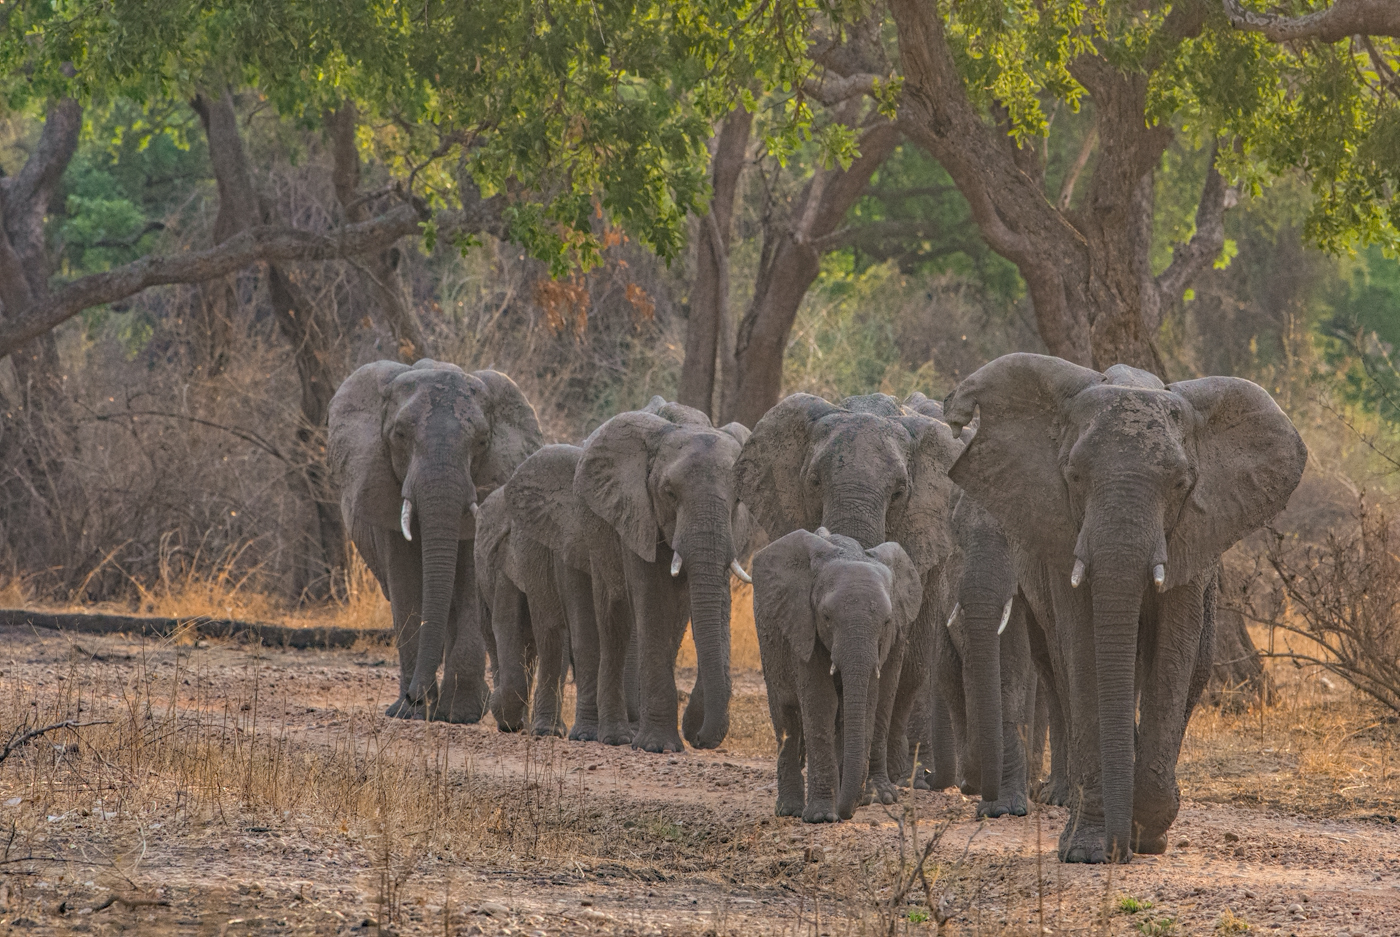 elephants emerge from the forest, South Luangwa